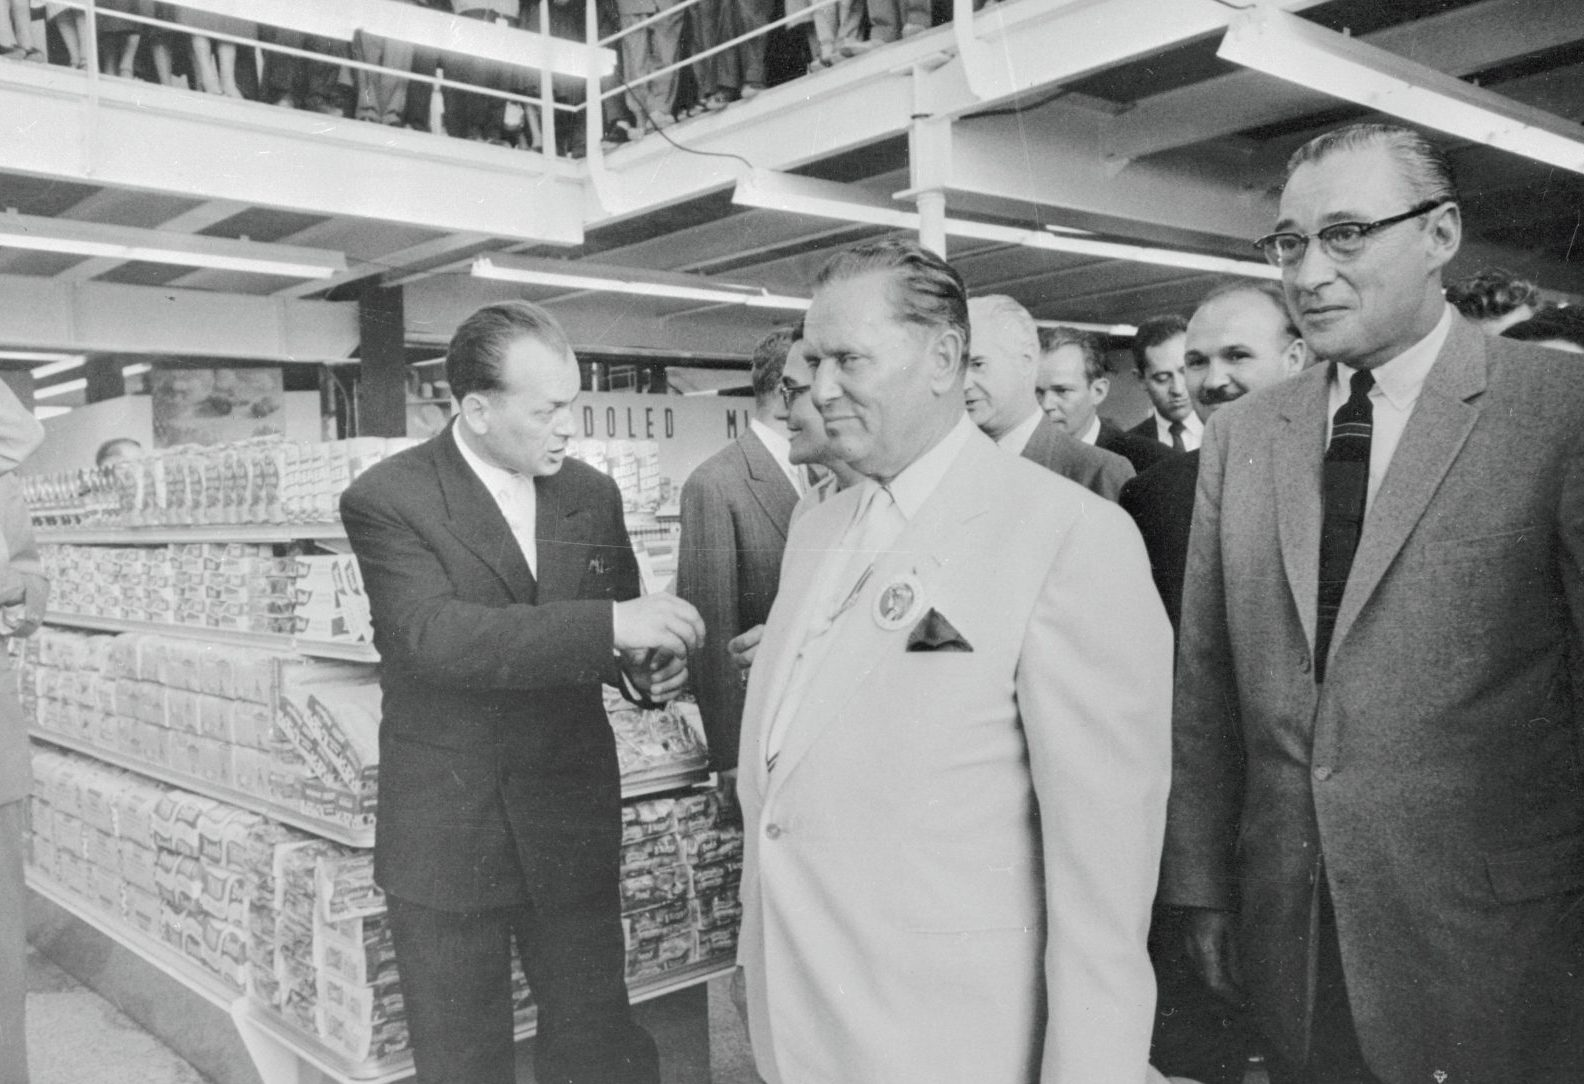 Marshal Tito (in white suit) is a delighted visitor to the Supermarket USA exhibit at the 1957 Zagreb International Trade Fair. Photo: Bettmann Archive/Getty images